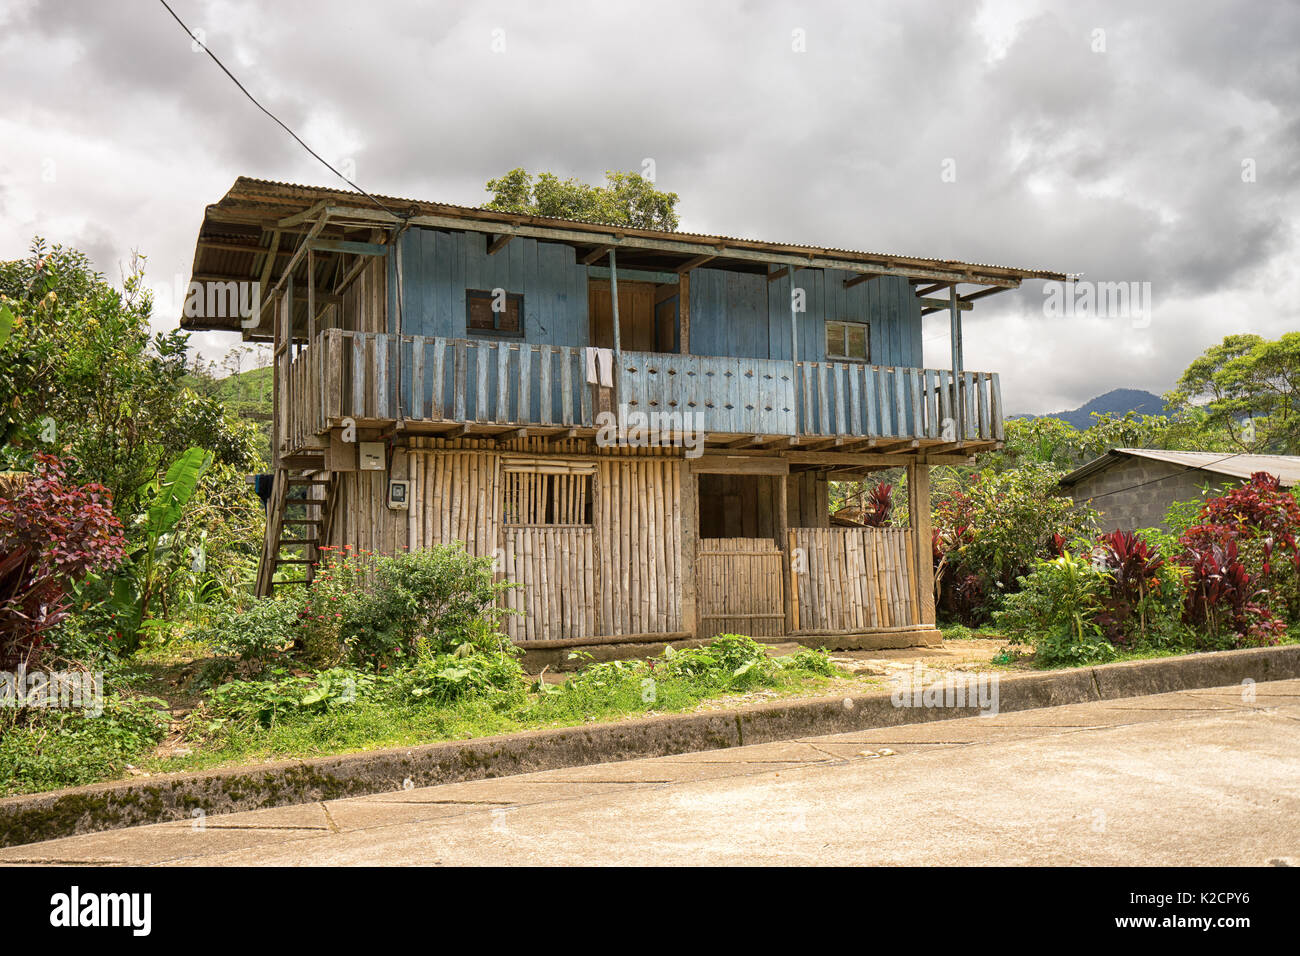 June 8, 2017 Jondachi, Ecuador: house made of planks and bamboo in the Amazon area - Stock Image